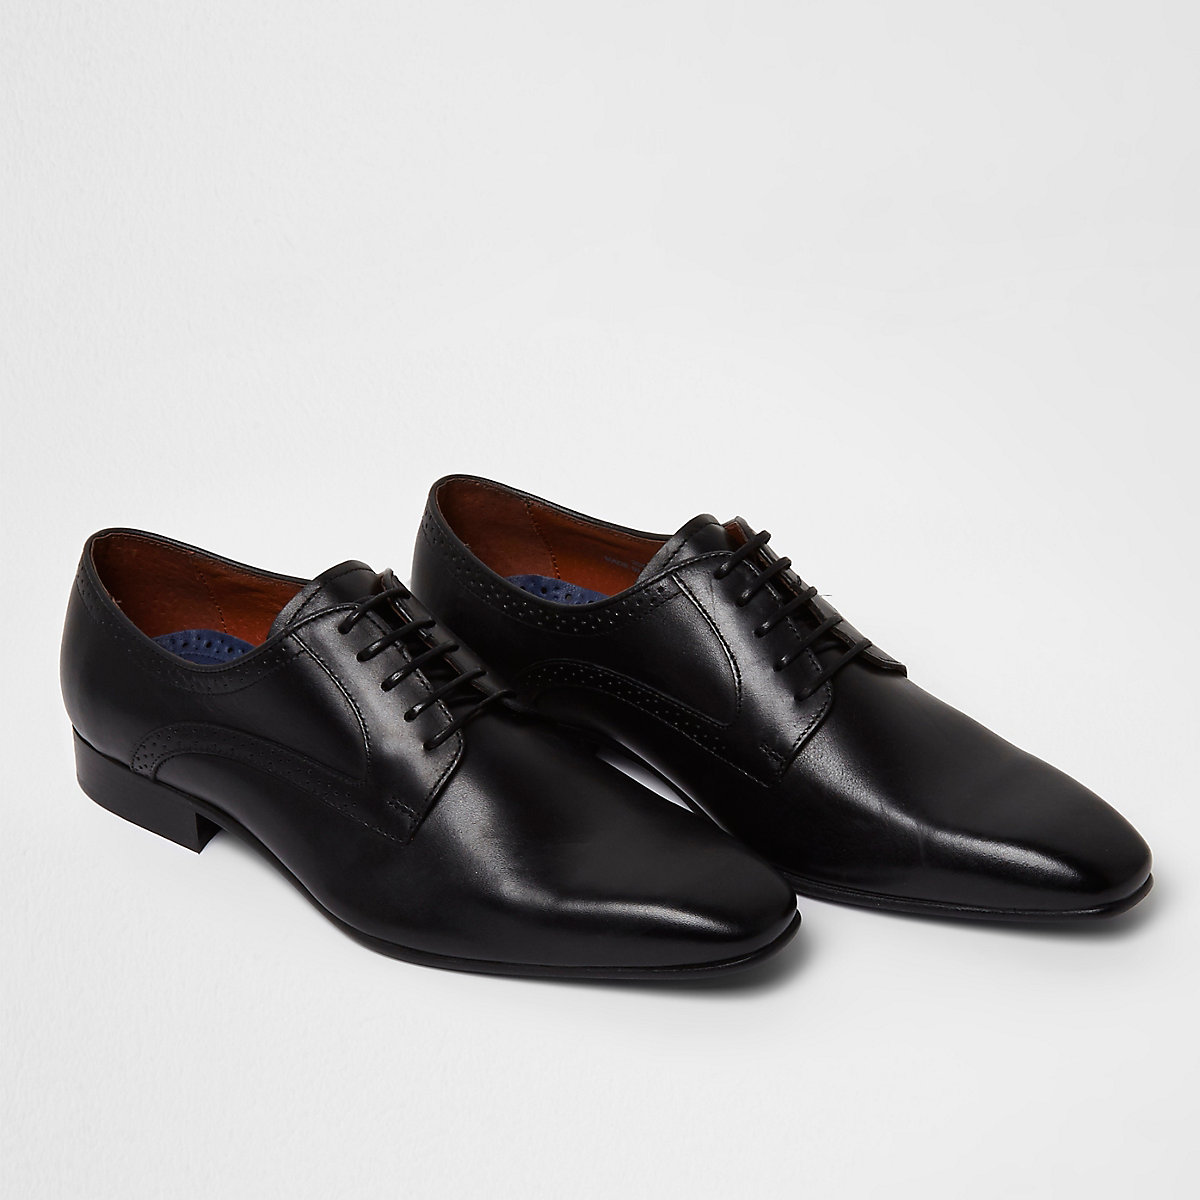 Blacks square toe leather derby shoes